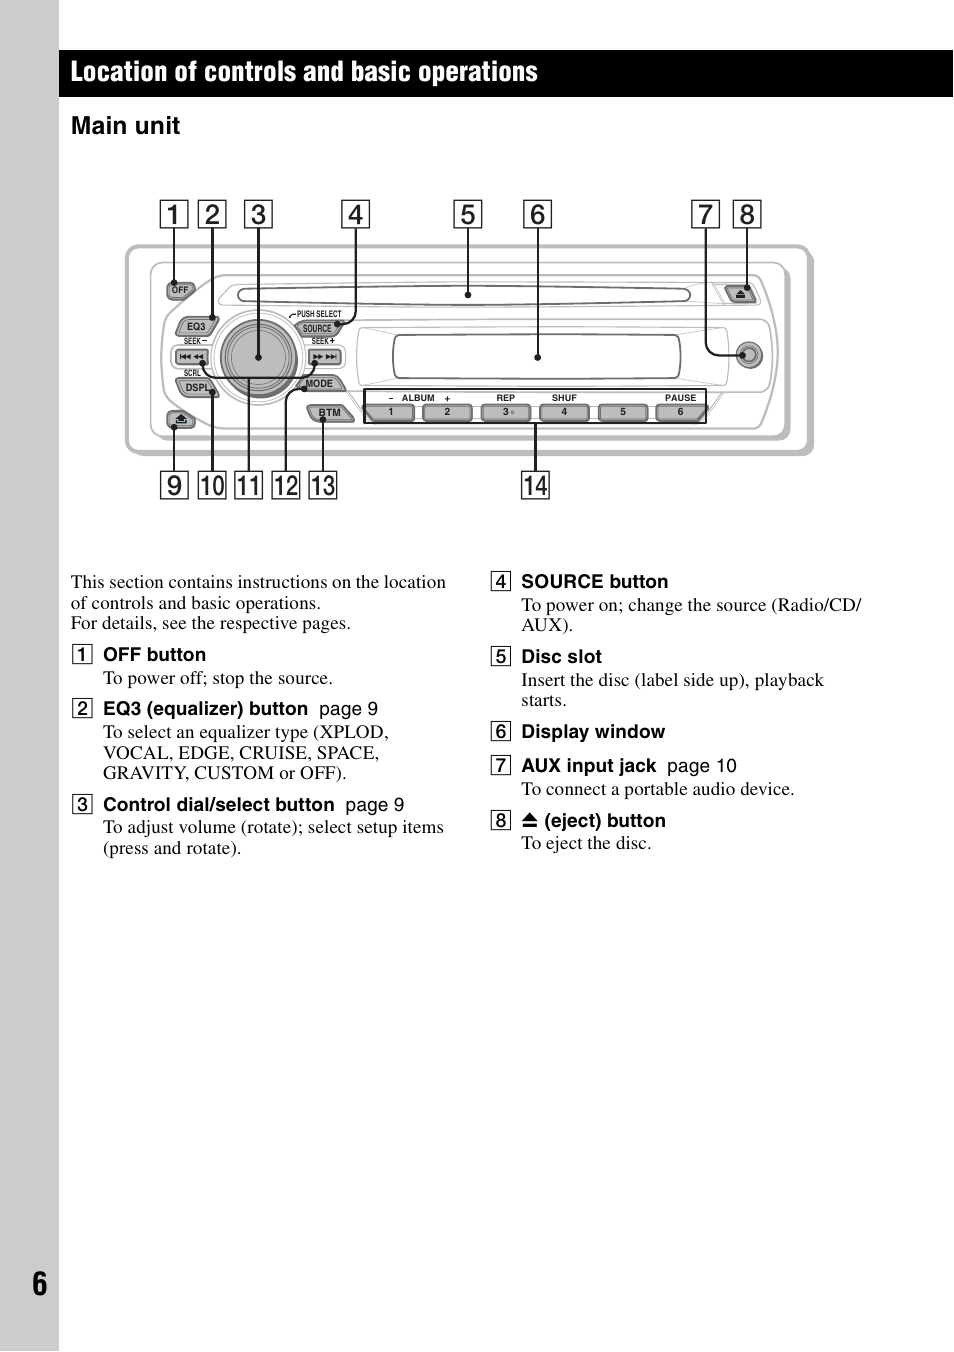 location of controls and basic operations, main unit sony cdxlocation of controls and basic operations, main unit sony cdx gt23w user manual page 6 52